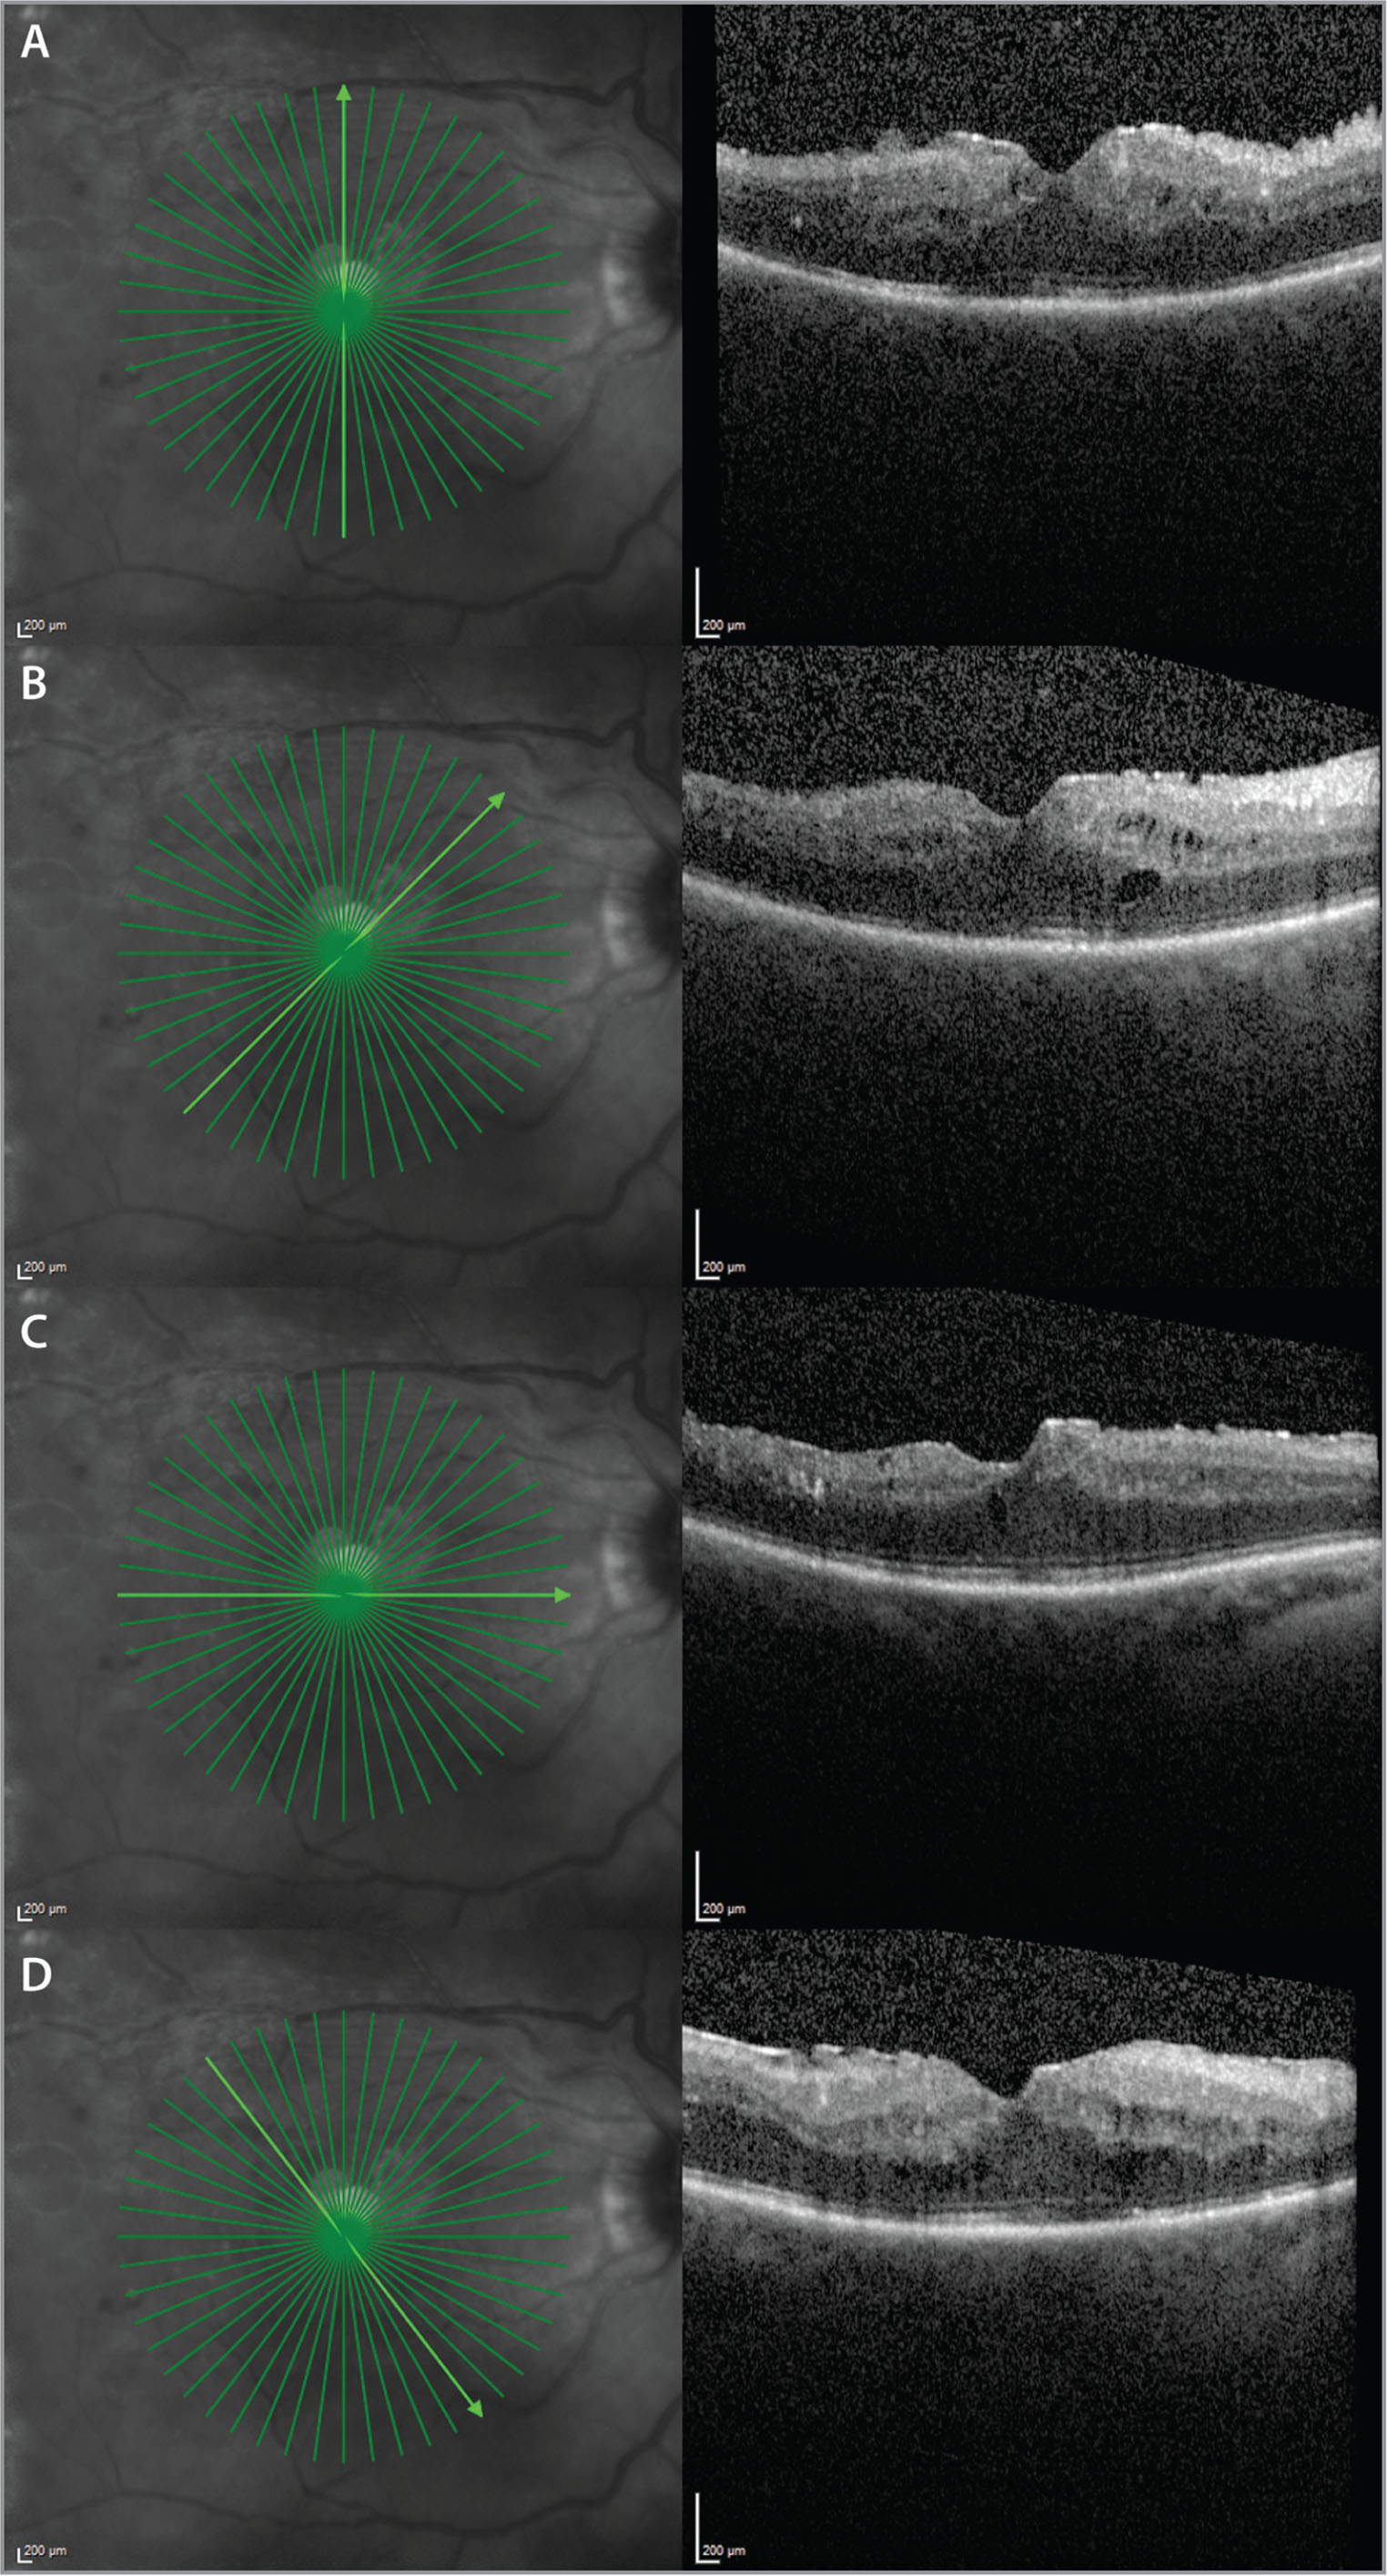 Postoperative radial optical coherence tomography scans in a 61-year-old female with a tractional retinal detachment associated with proliferative diabetic retinopathy who underwent repair with vitrectomy, endolaser, and epiretinal membrane peel but no internal limiting membrane peel. Postoperative images at 2 months following surgery show release of all traction on the fovea on multiple radial cuts.